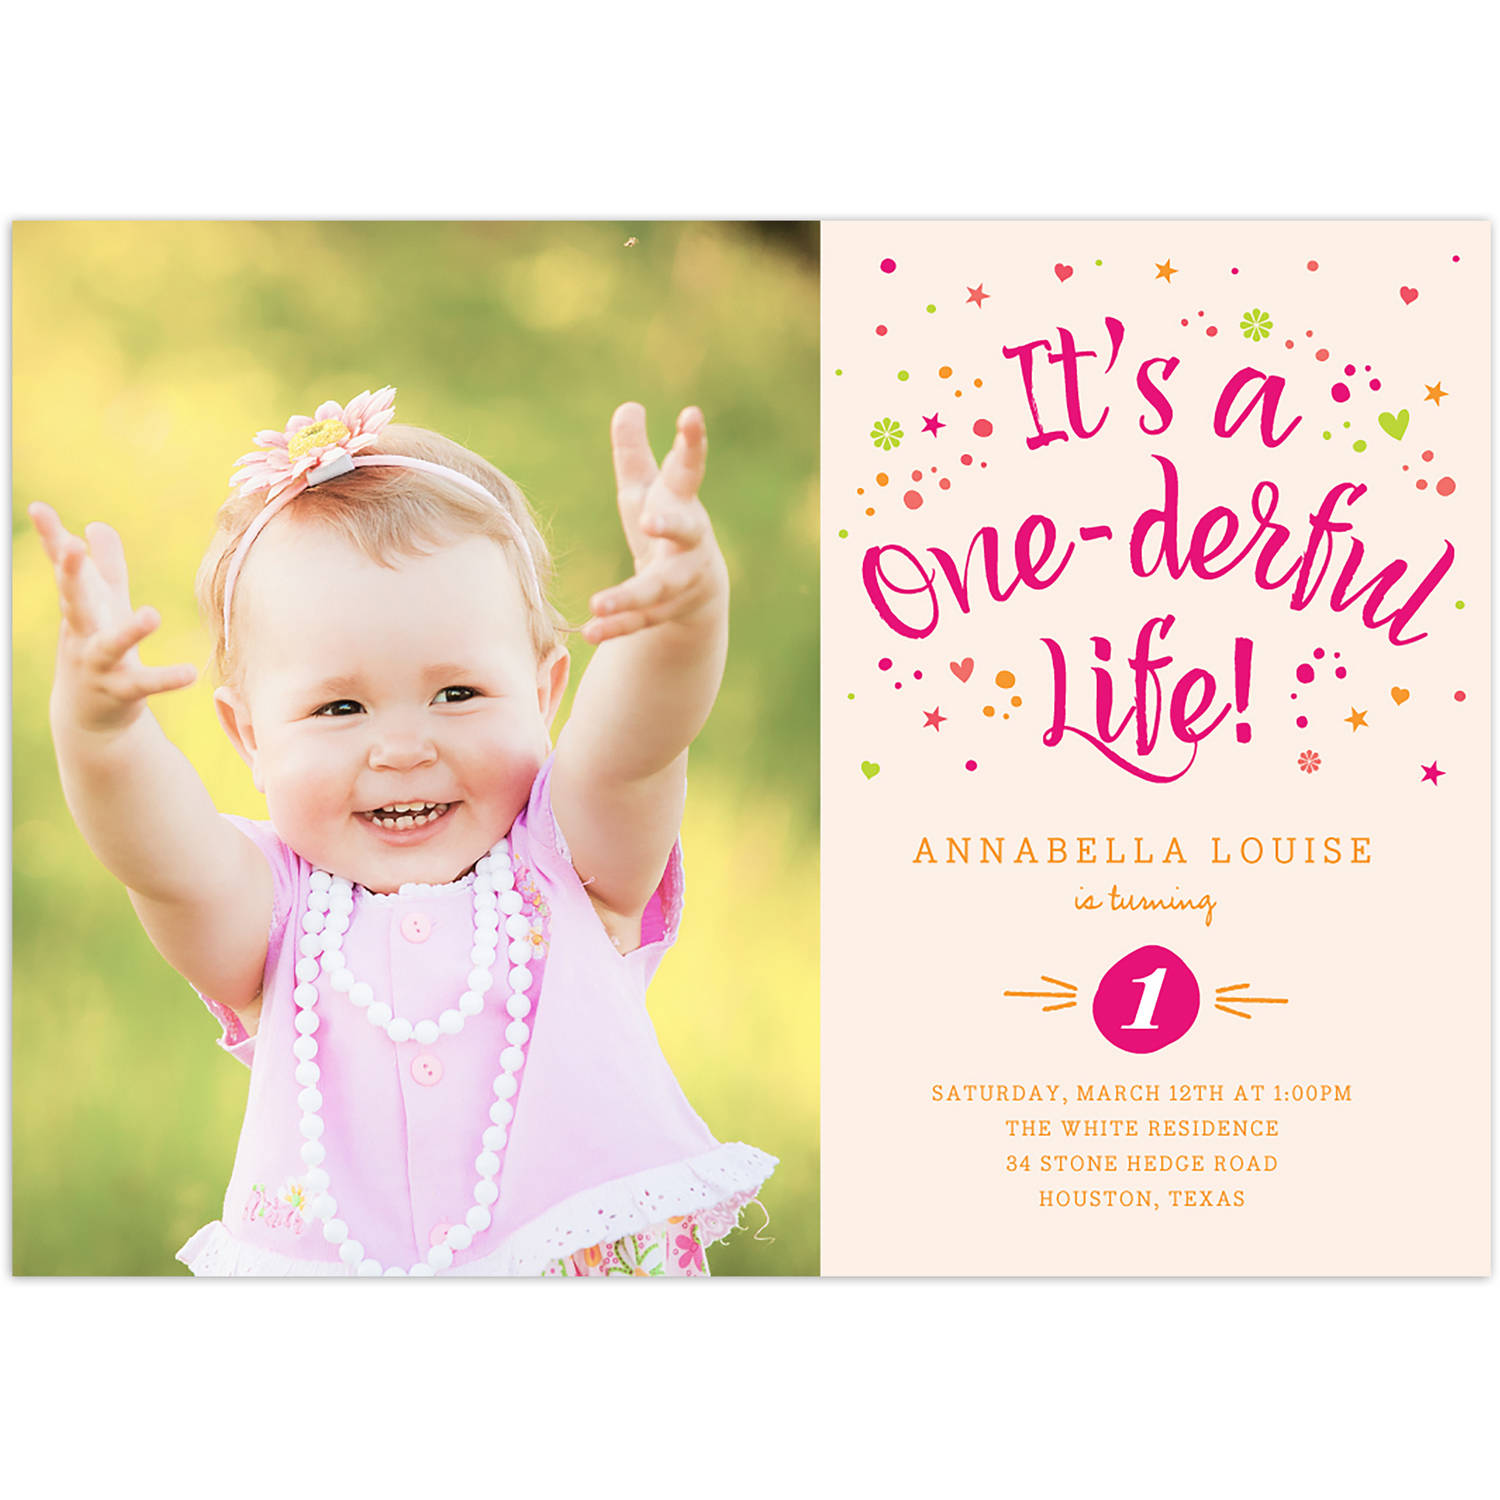 One-derful Life Birthday First Invitation